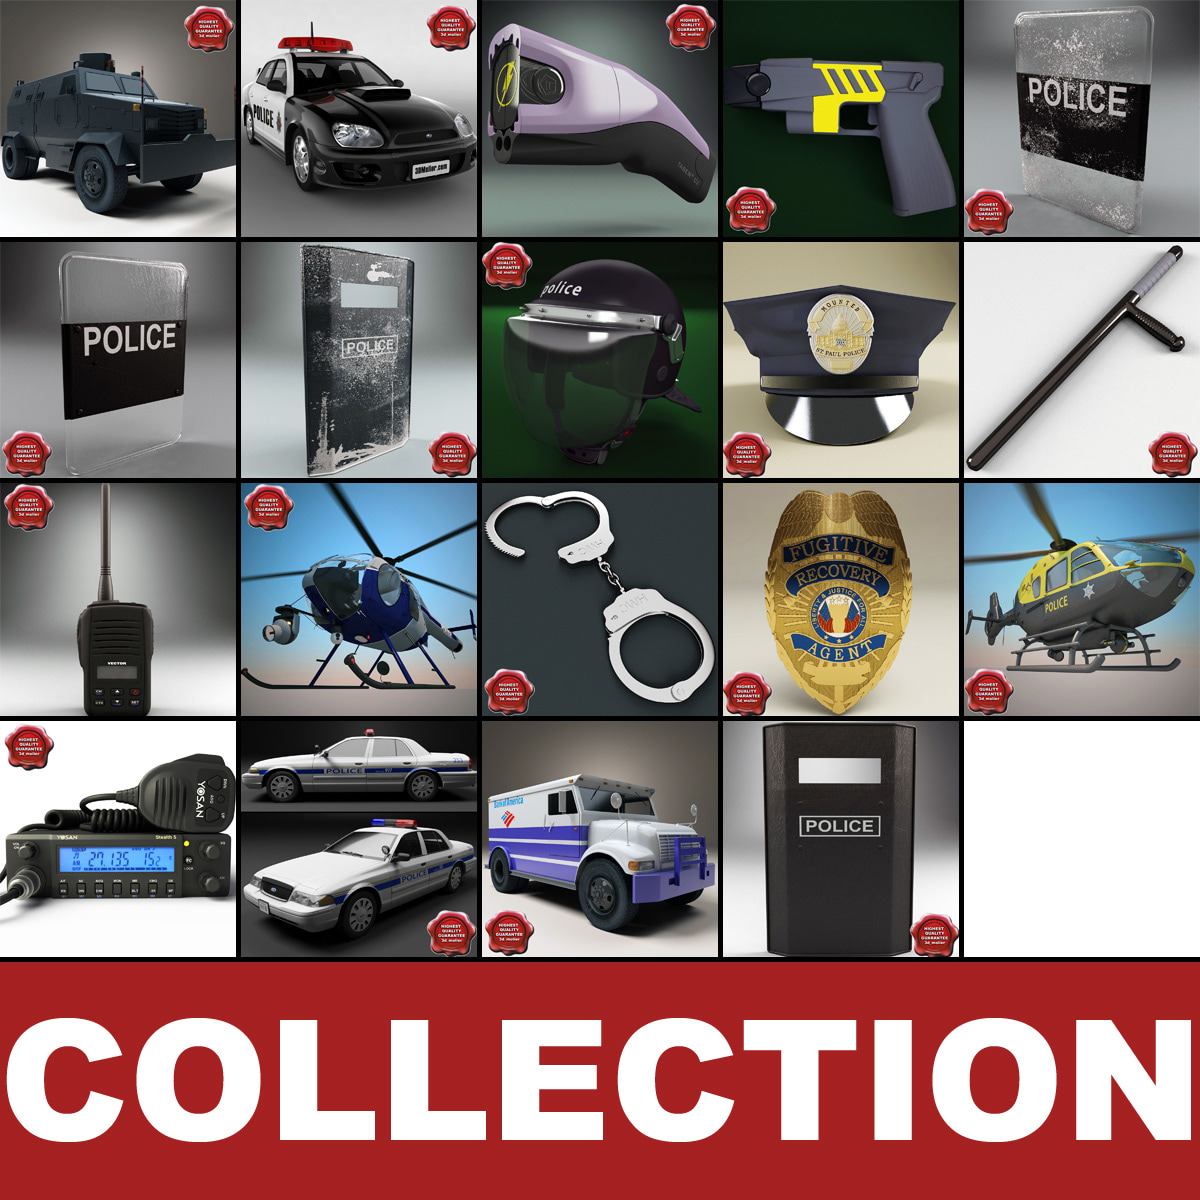 Police_Collection_000.jpg